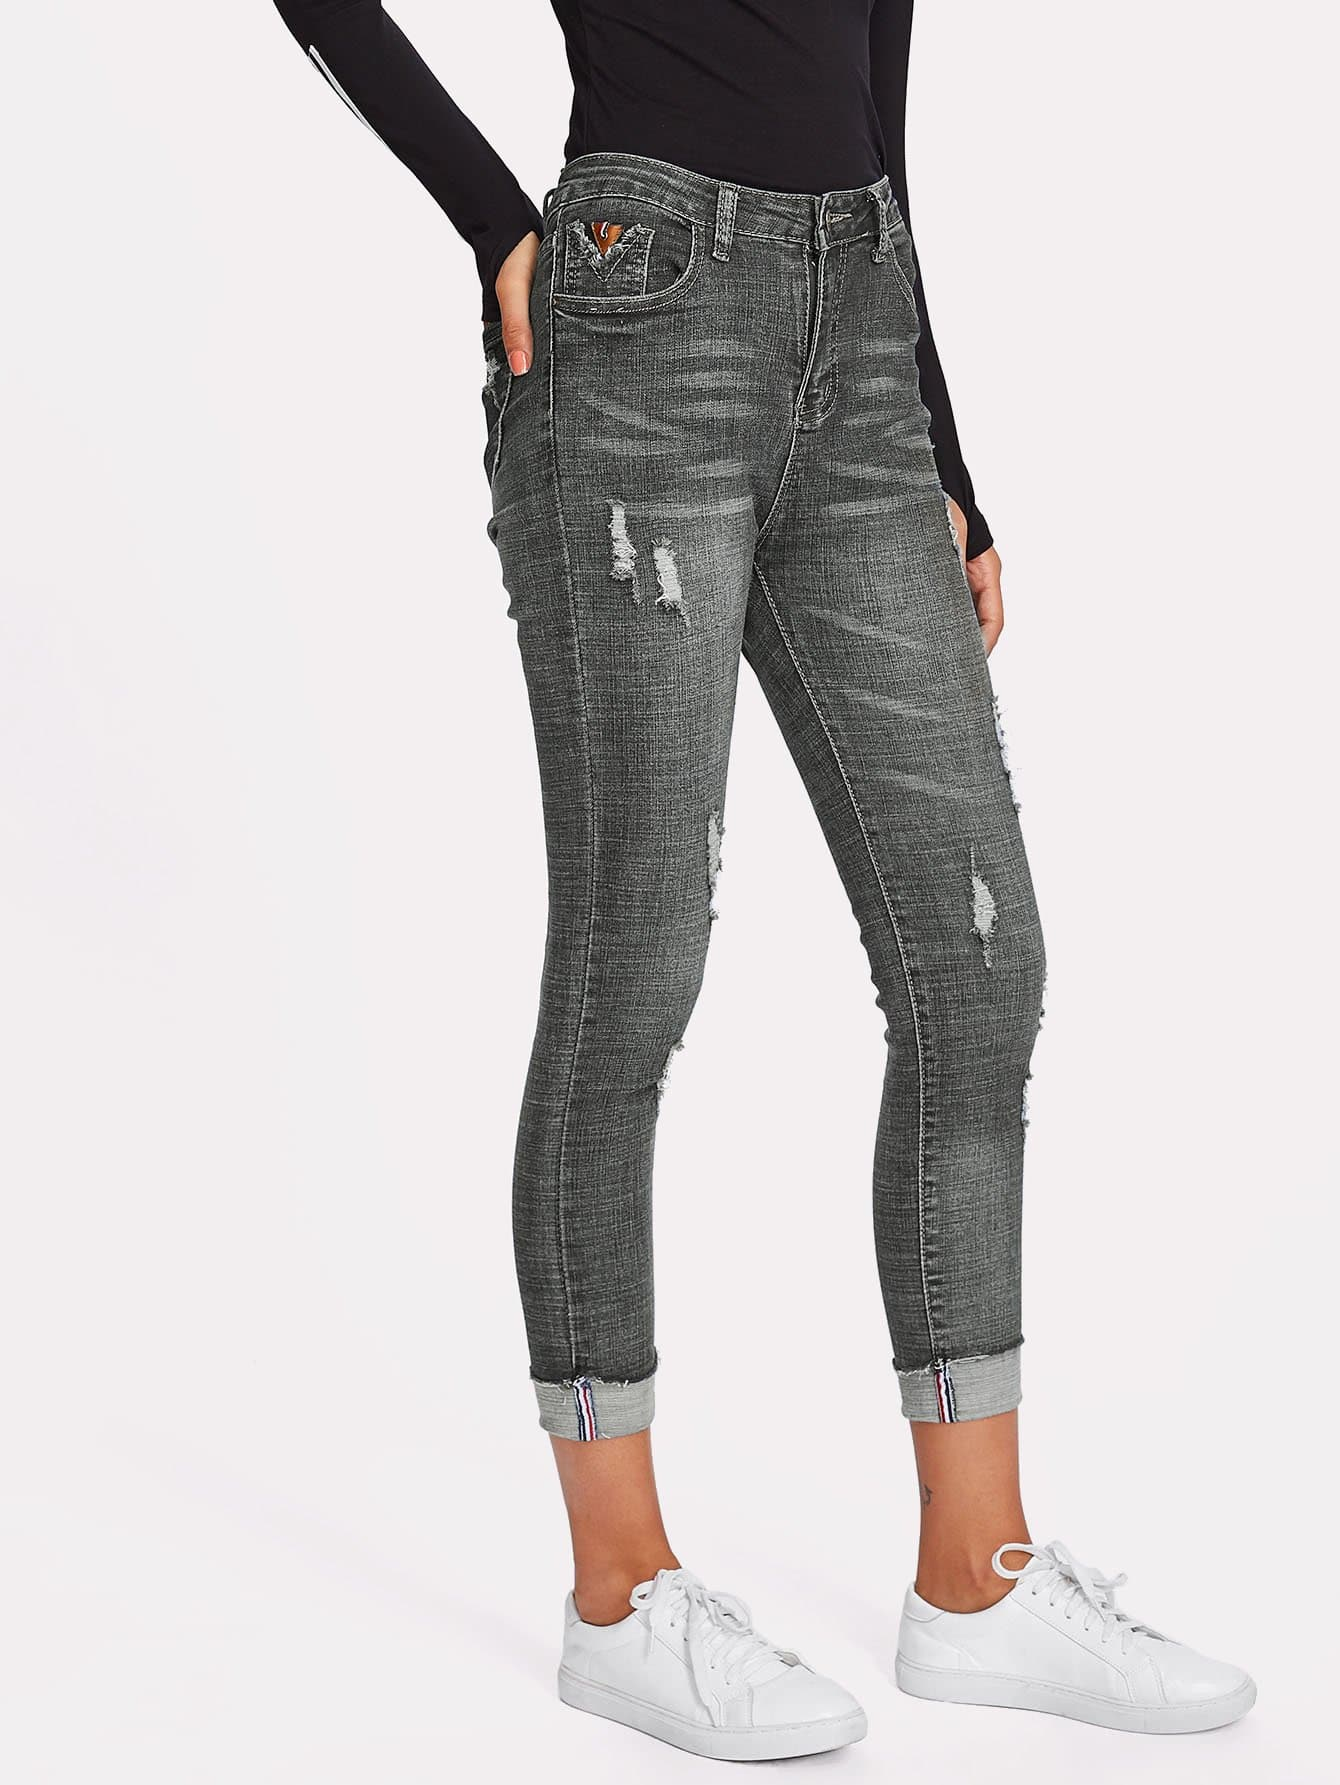 Rolled Hem Ripped Skinny Jeans solid rolled hem pants